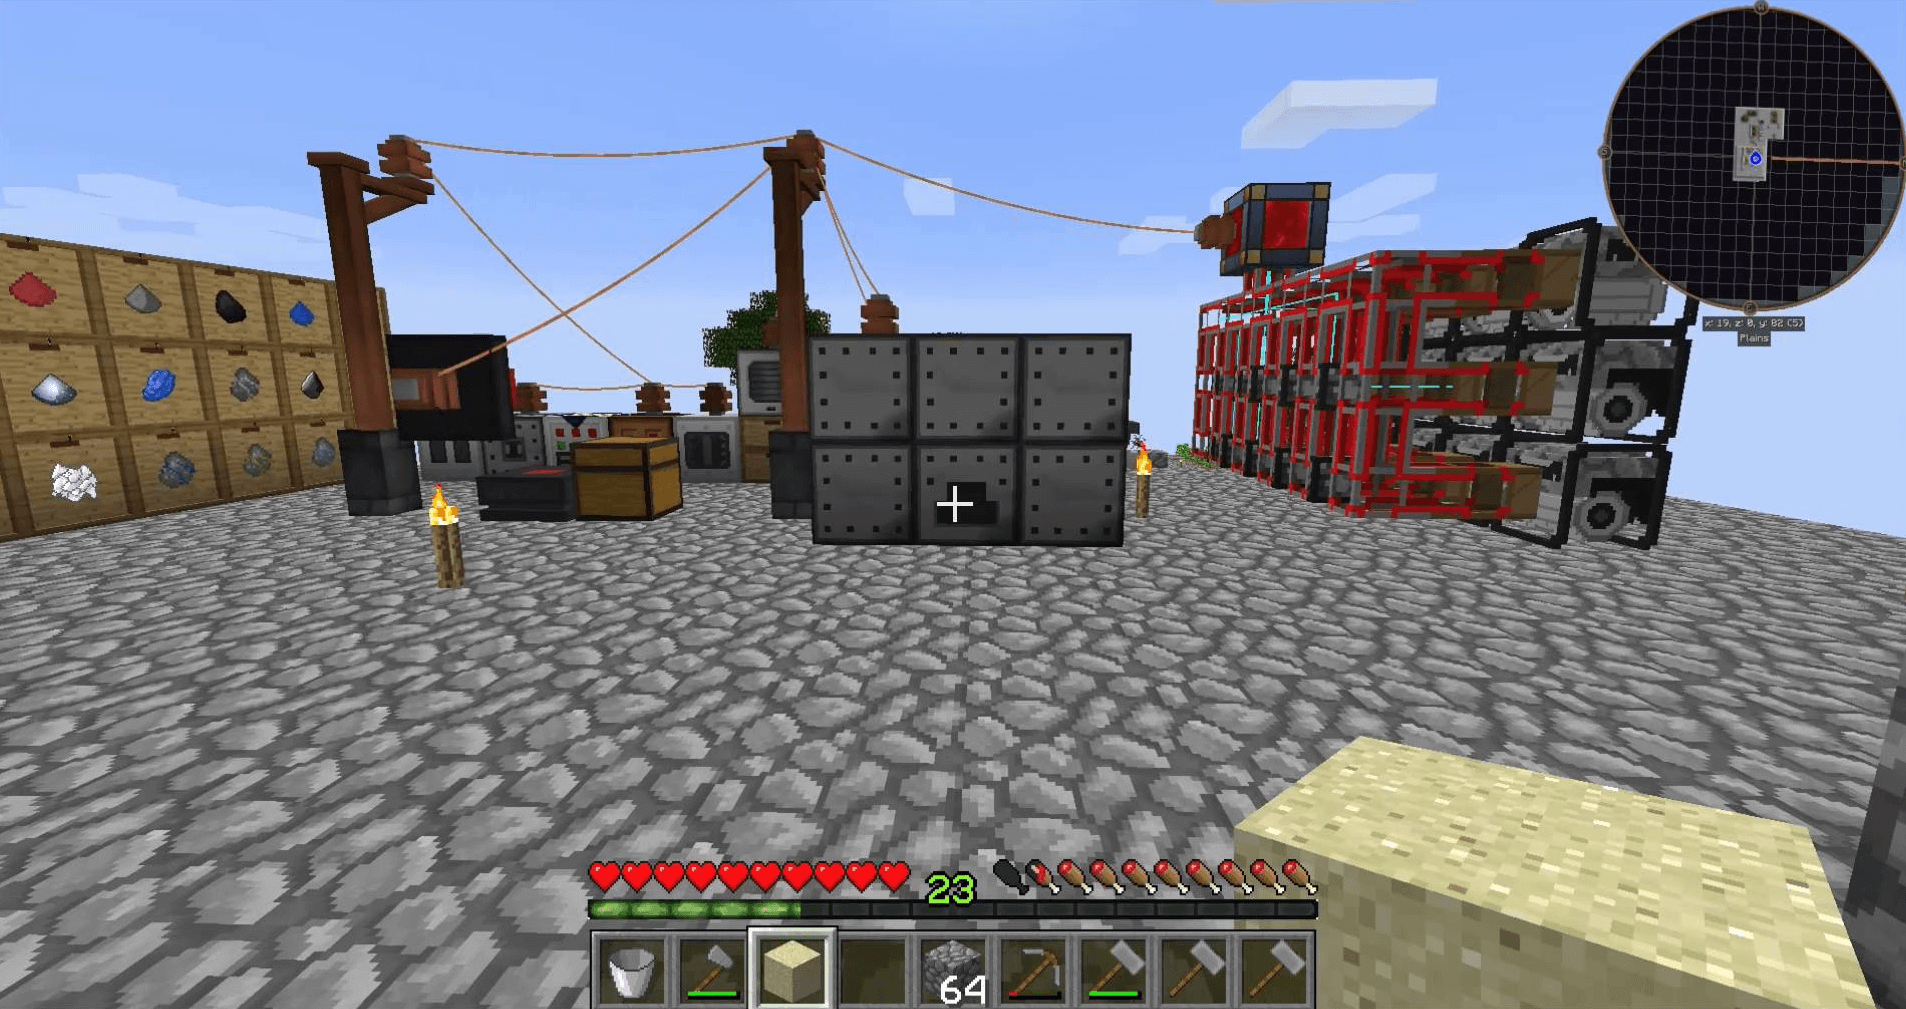 Infinity Evolved Skyblock gameplay screenshot